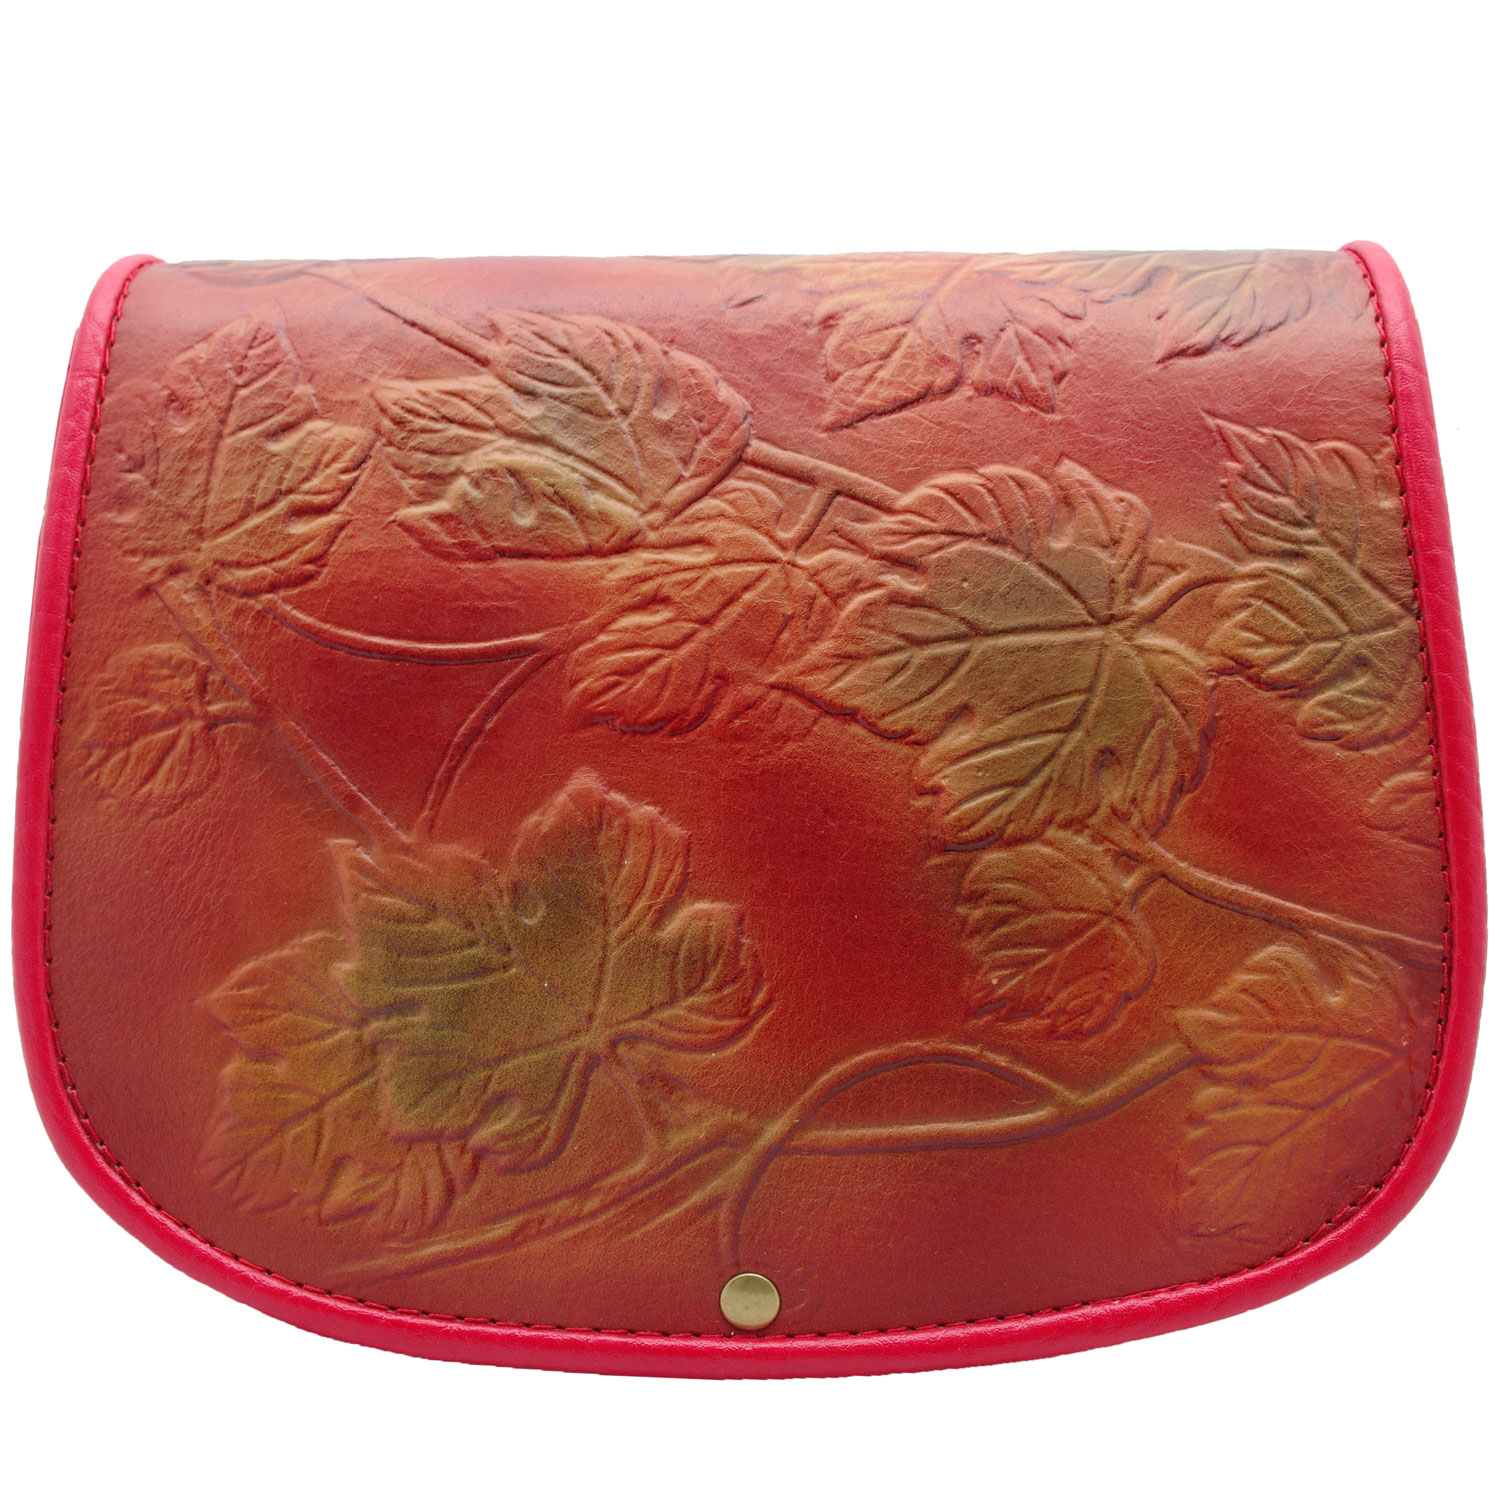 women-full-grain-leather-shoulder-bag-red-autumn-leaves